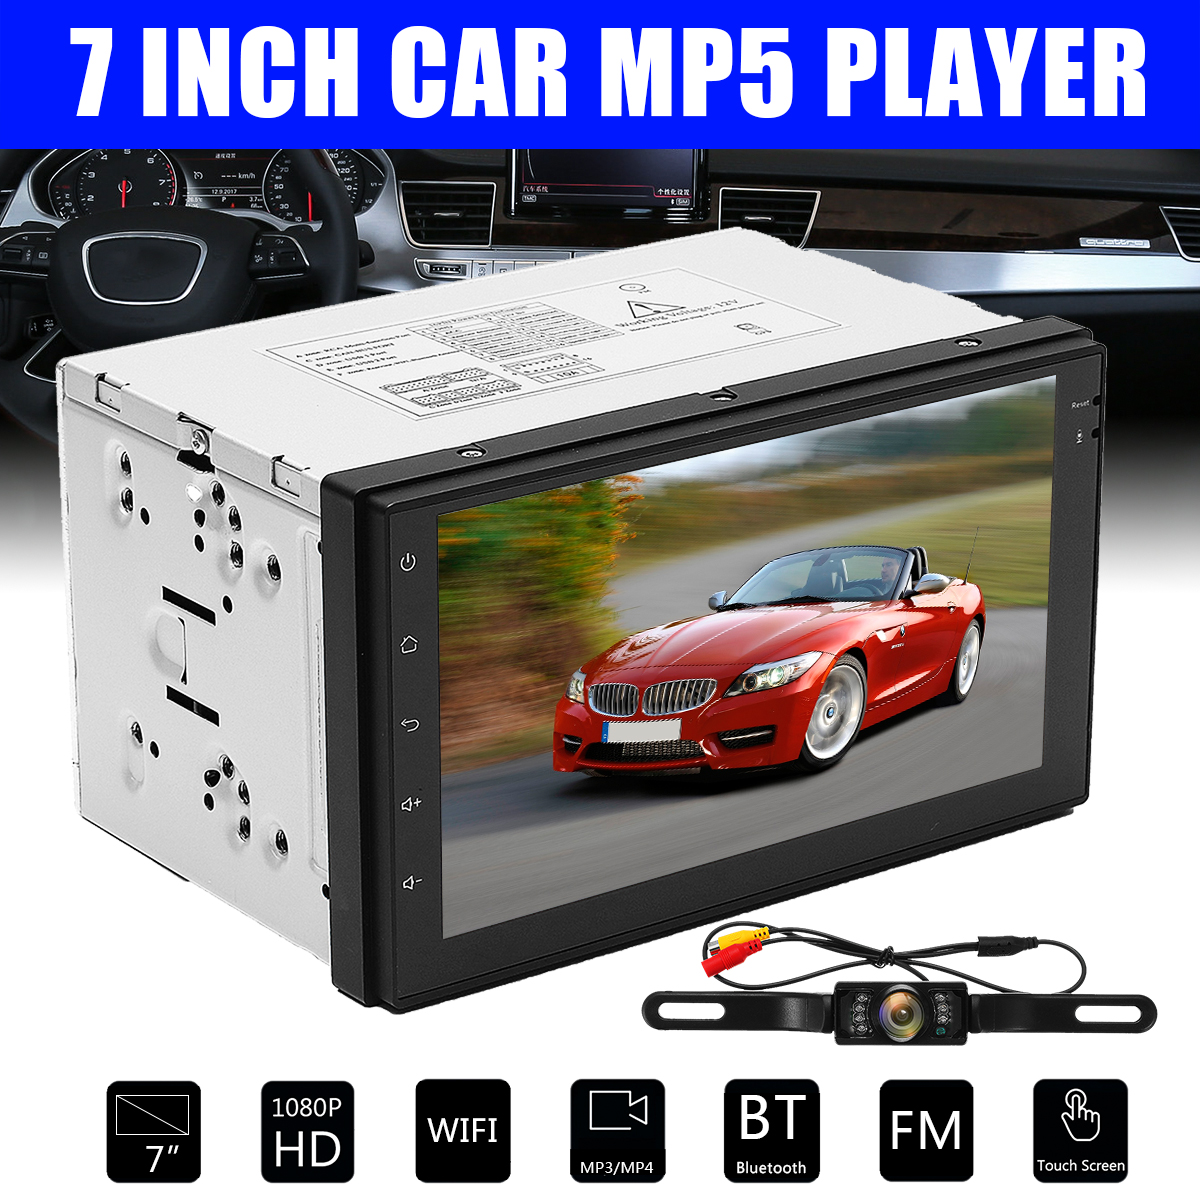 7 inch 2DIN Android 6.0 Car Radio Quad Core DVD Video MP5 Player GPS Navigation Bluetooth Car Stereo Wifi 4G Autoradio + Camera android 6 0 7 double 2din head unit touch screen car radio stereo no dvd gps obd 3g 4g wifi car stereo autoradio gps navigation